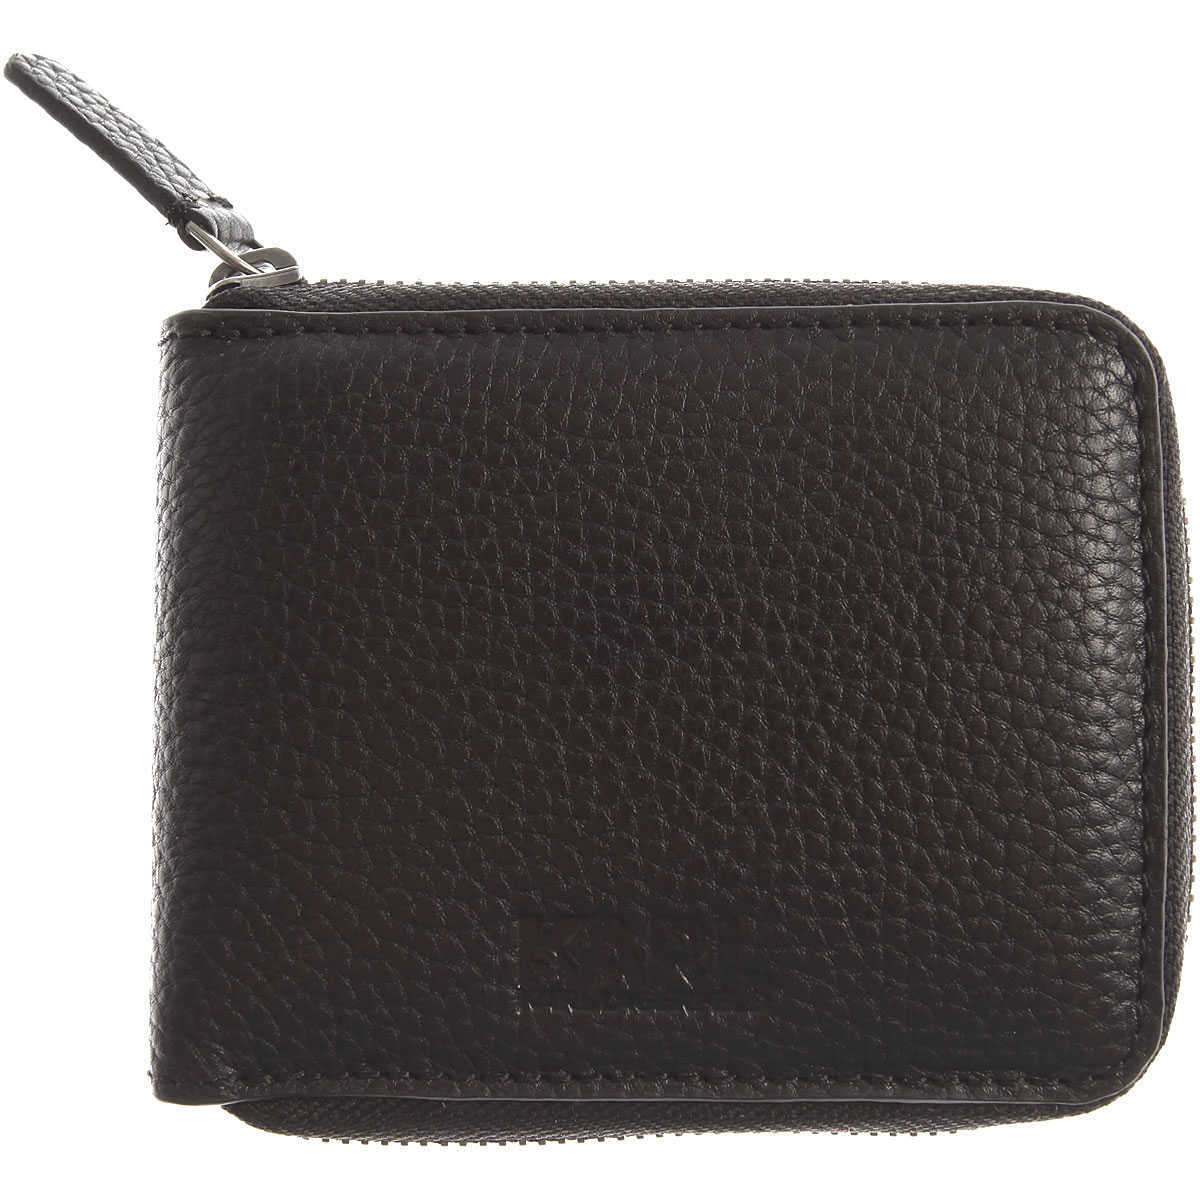 Karl Lagerfeld Wallet for Men On Sale Black - GOOFASH